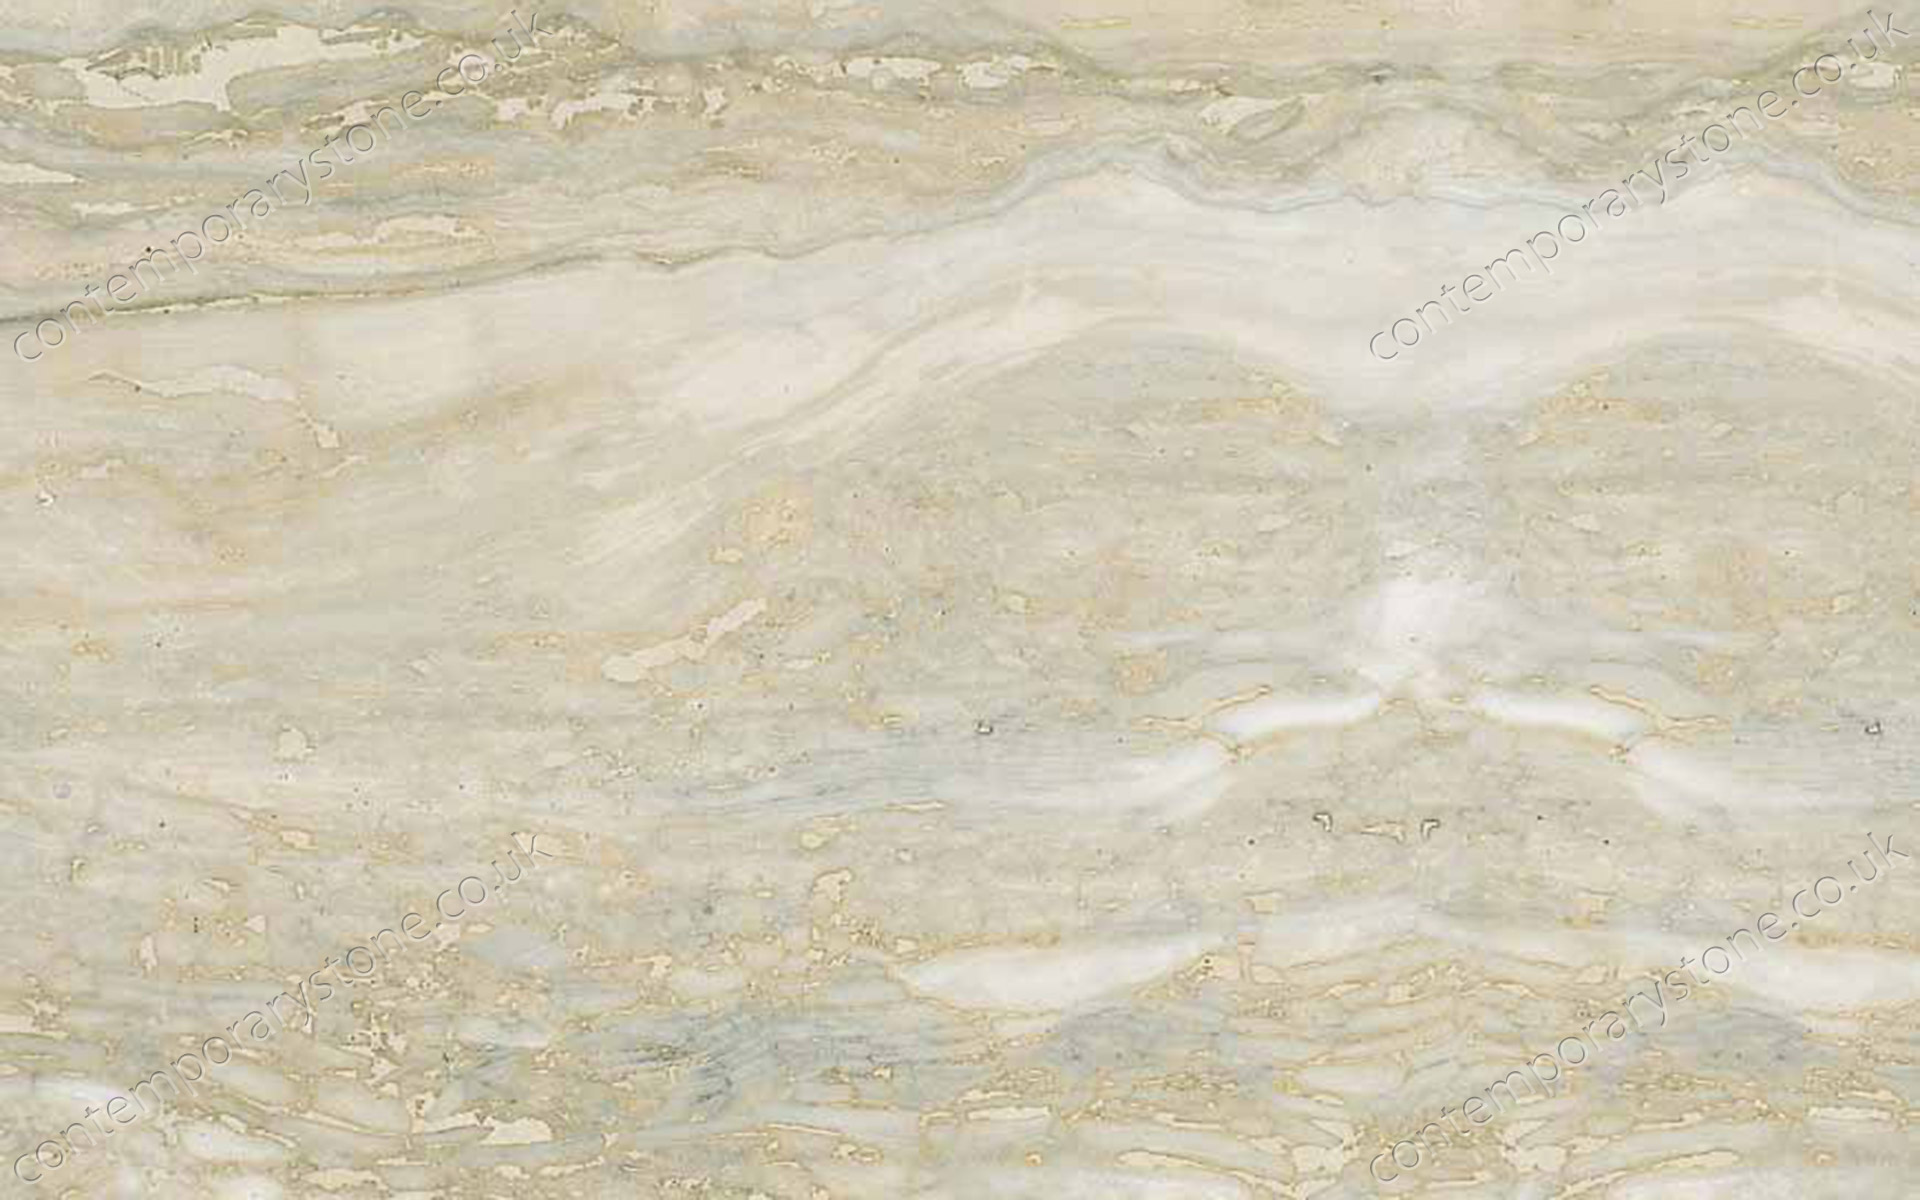 Travertino Silver travertine close-up